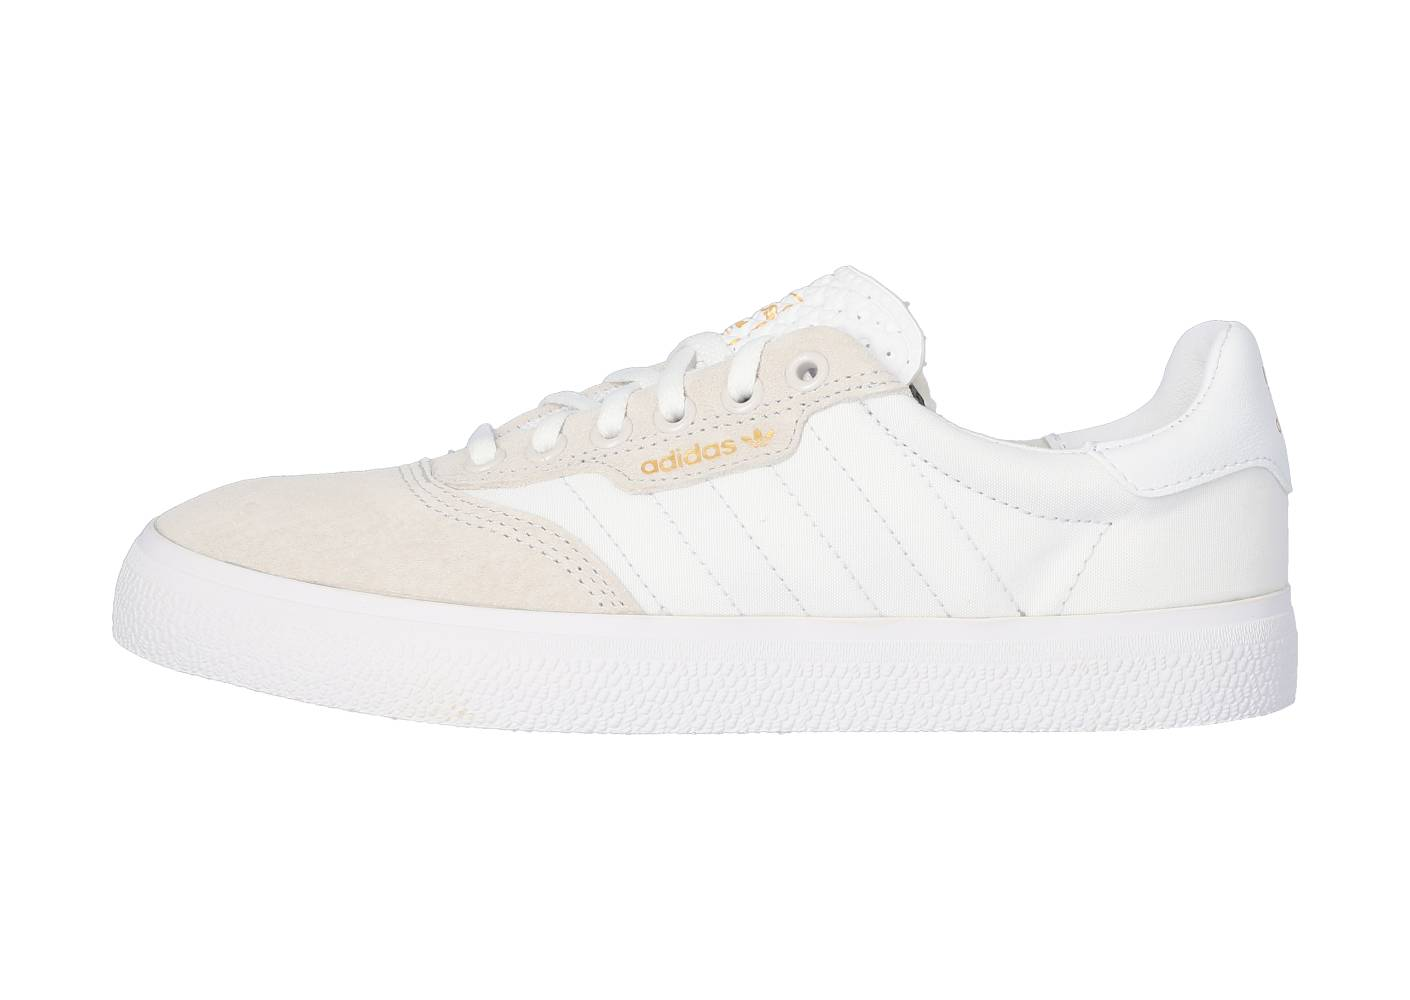 adidas Homme 3mc Blanche Et Or Skate 41 1/3